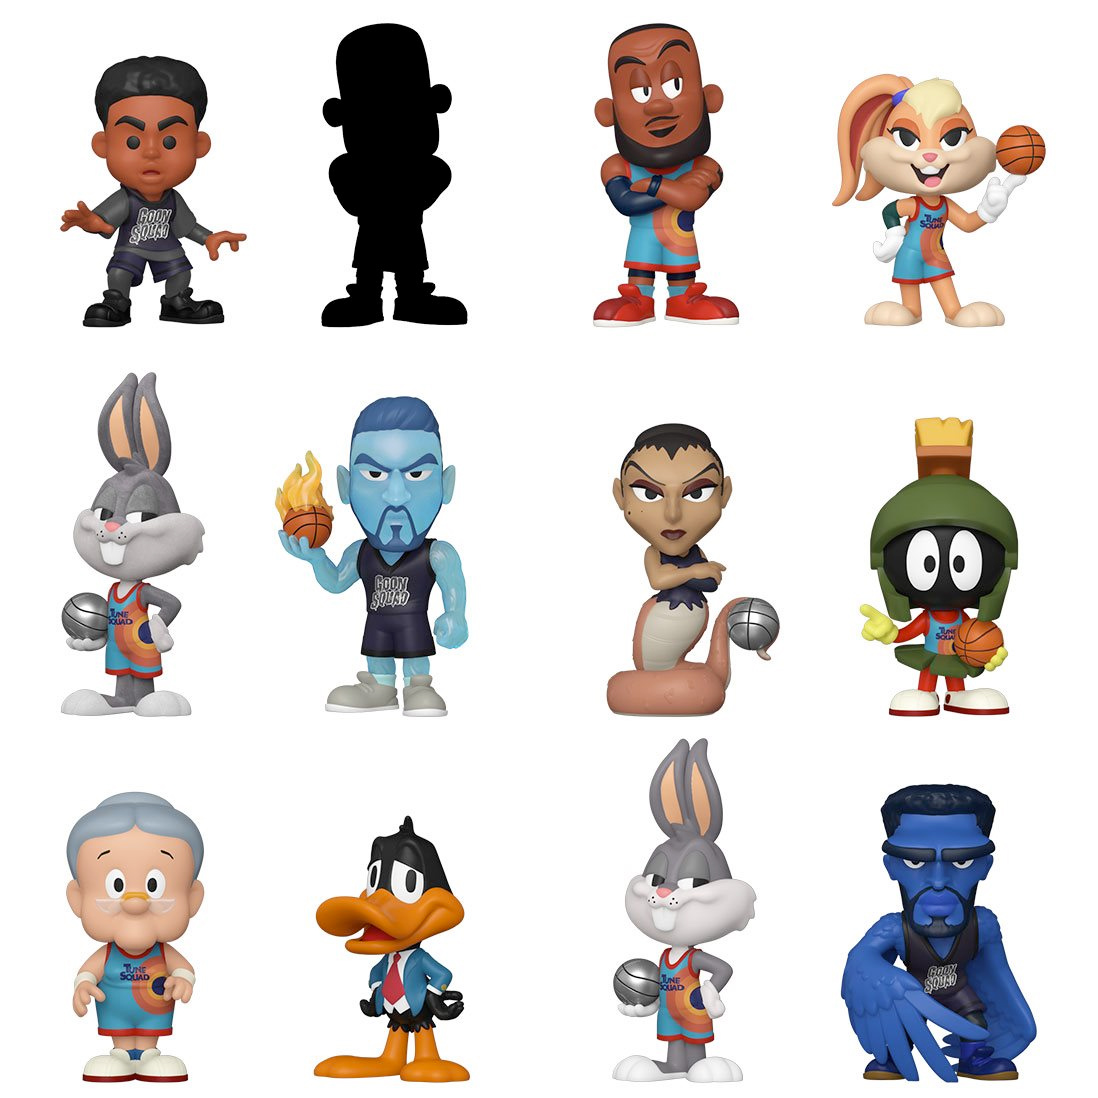 Space Jam 2 Mystery Minis Mini-Figures